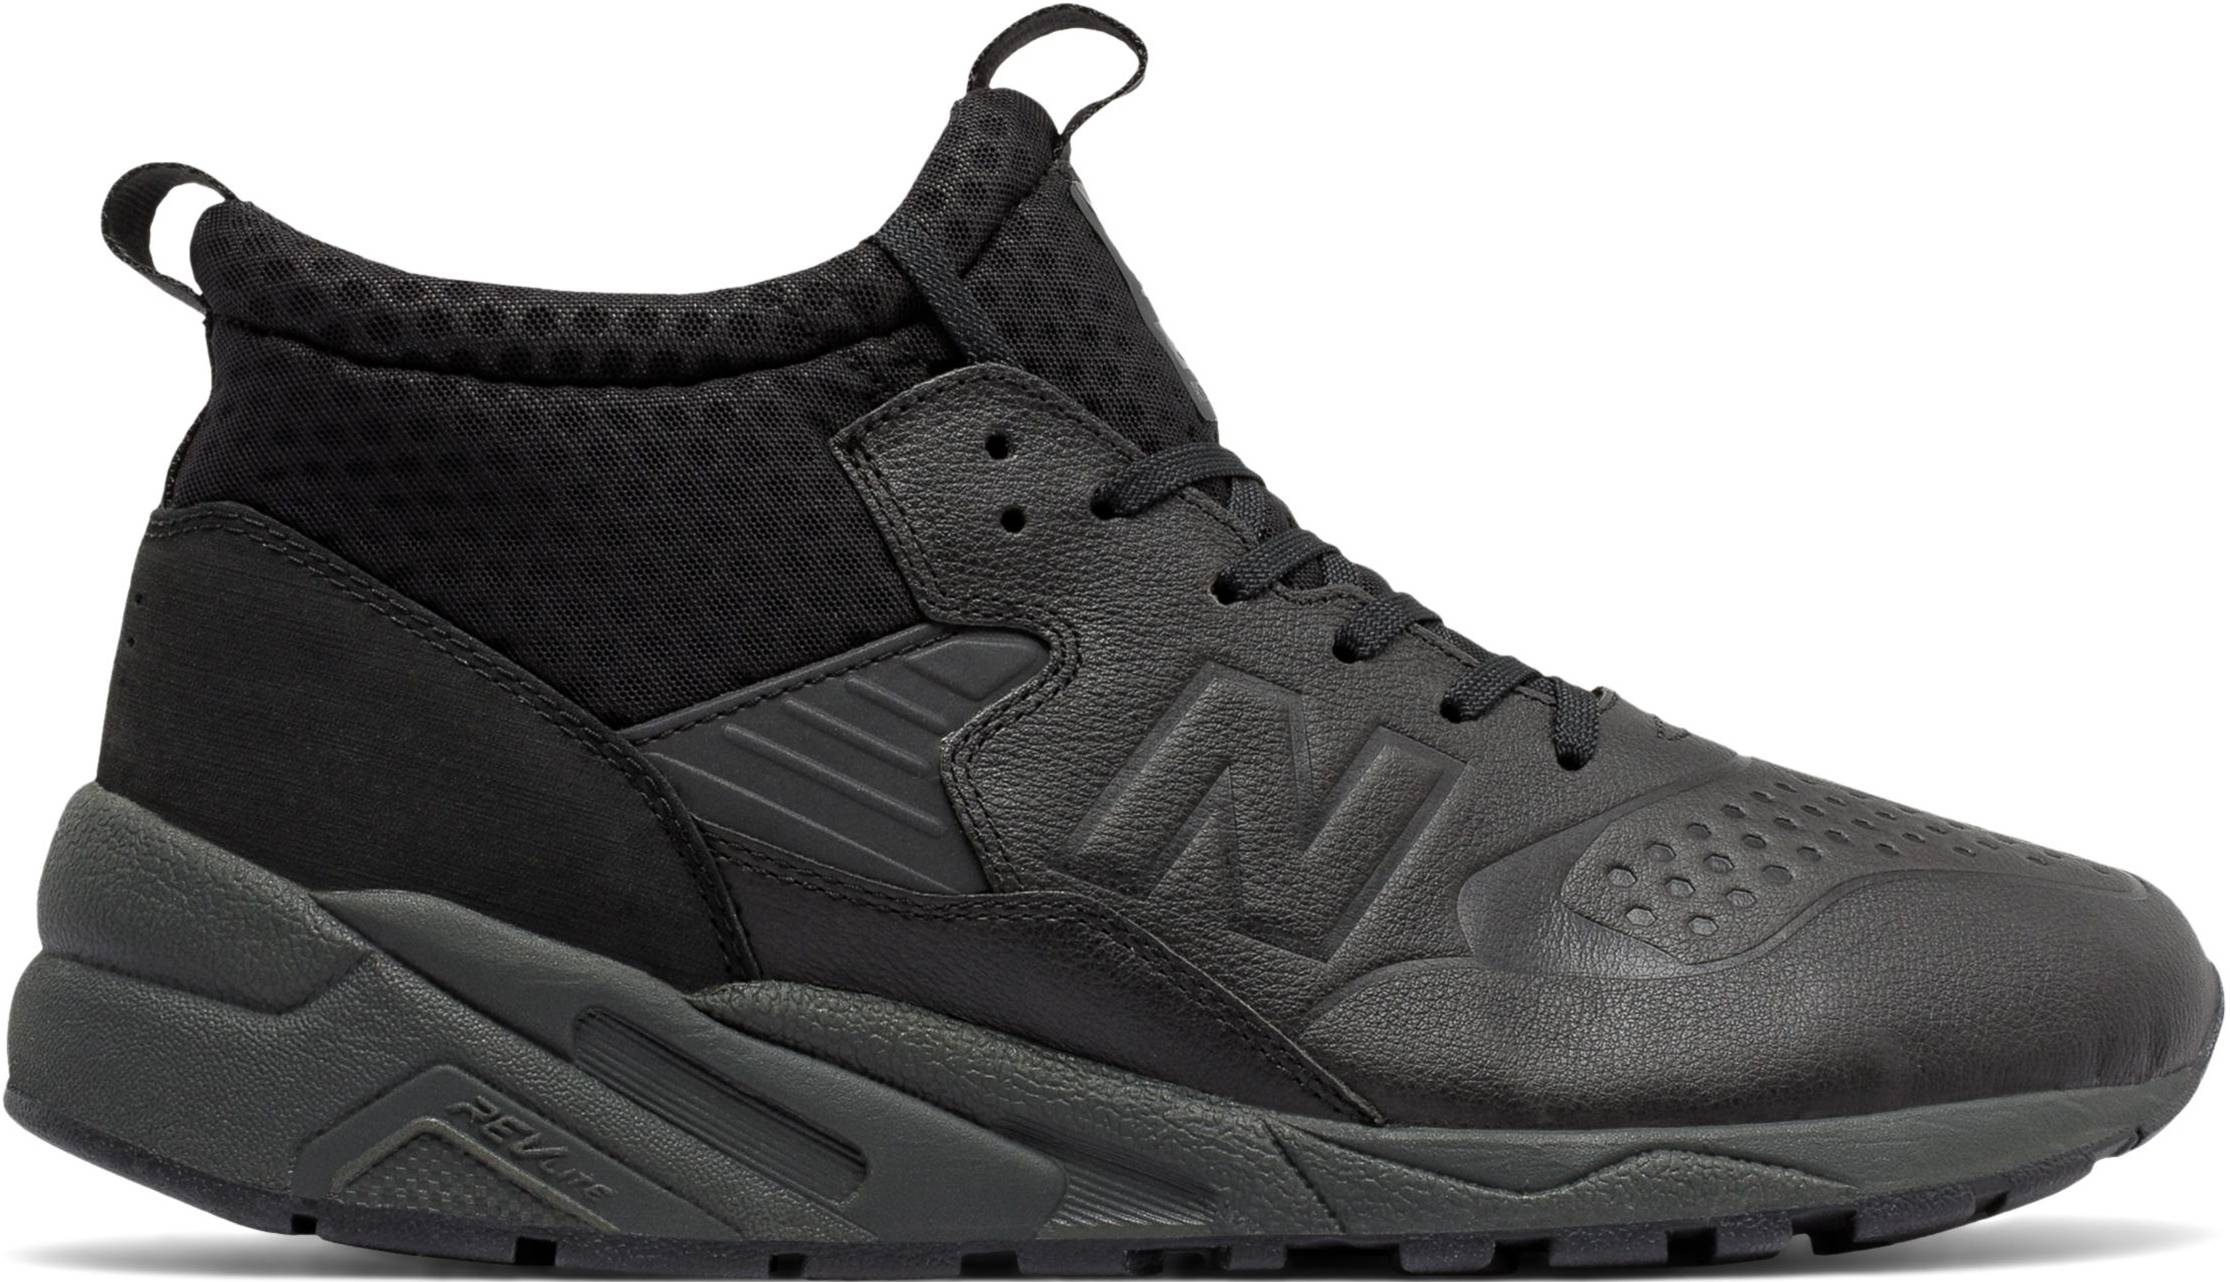 New Balance 580 Deconstructed Mid